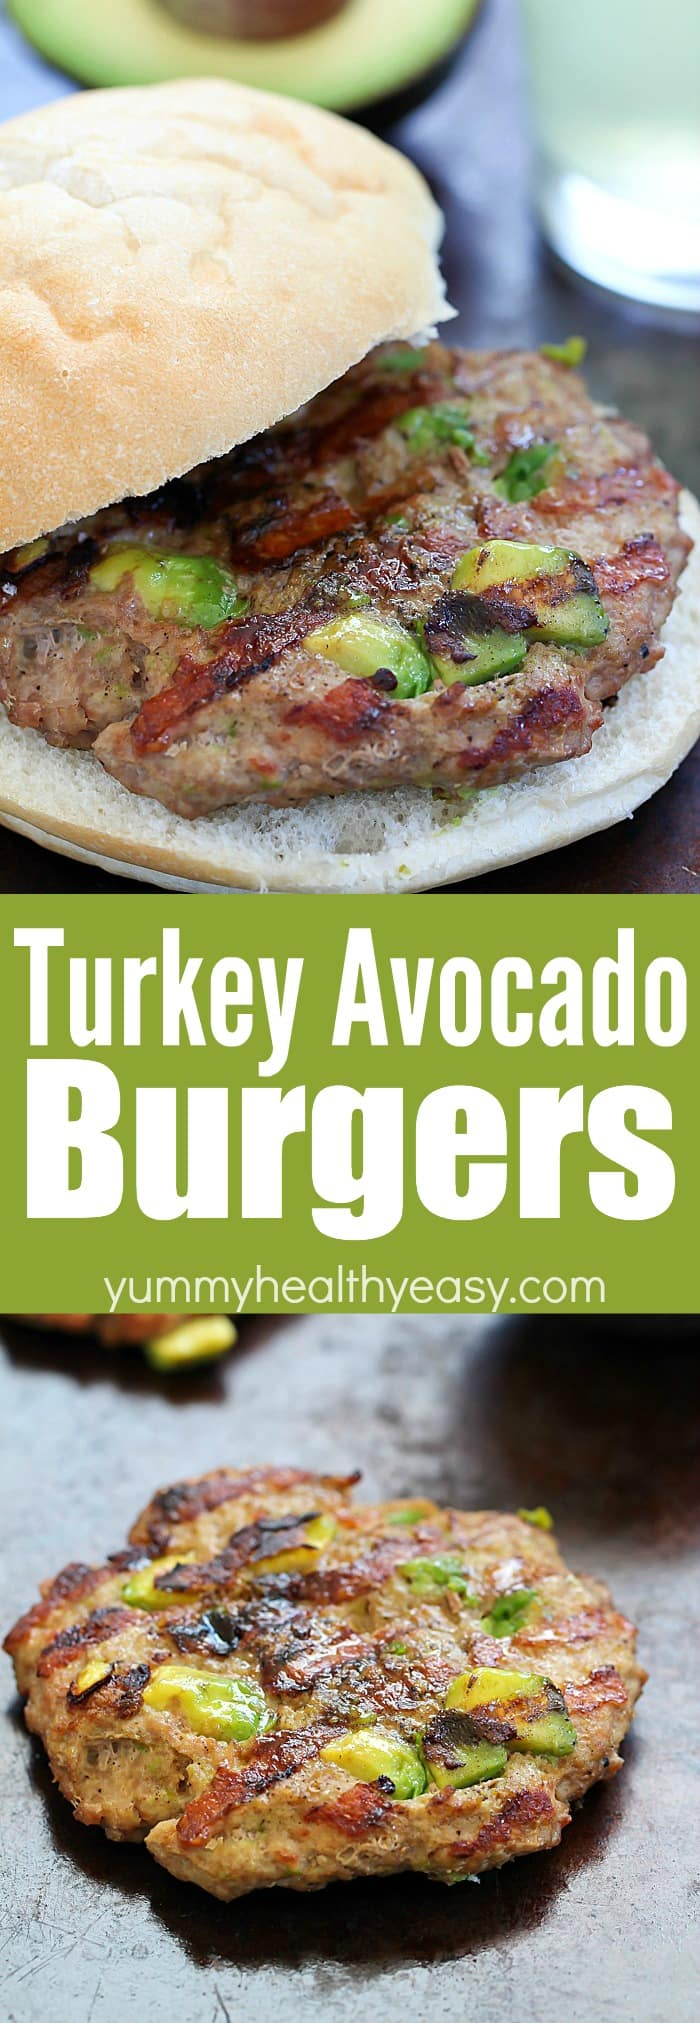 These Easy Turkey Avocado Burgers will be your new favorite turkey burger recipe! Only a few easy ingredients for an incredibly juicy burger you will love! AD